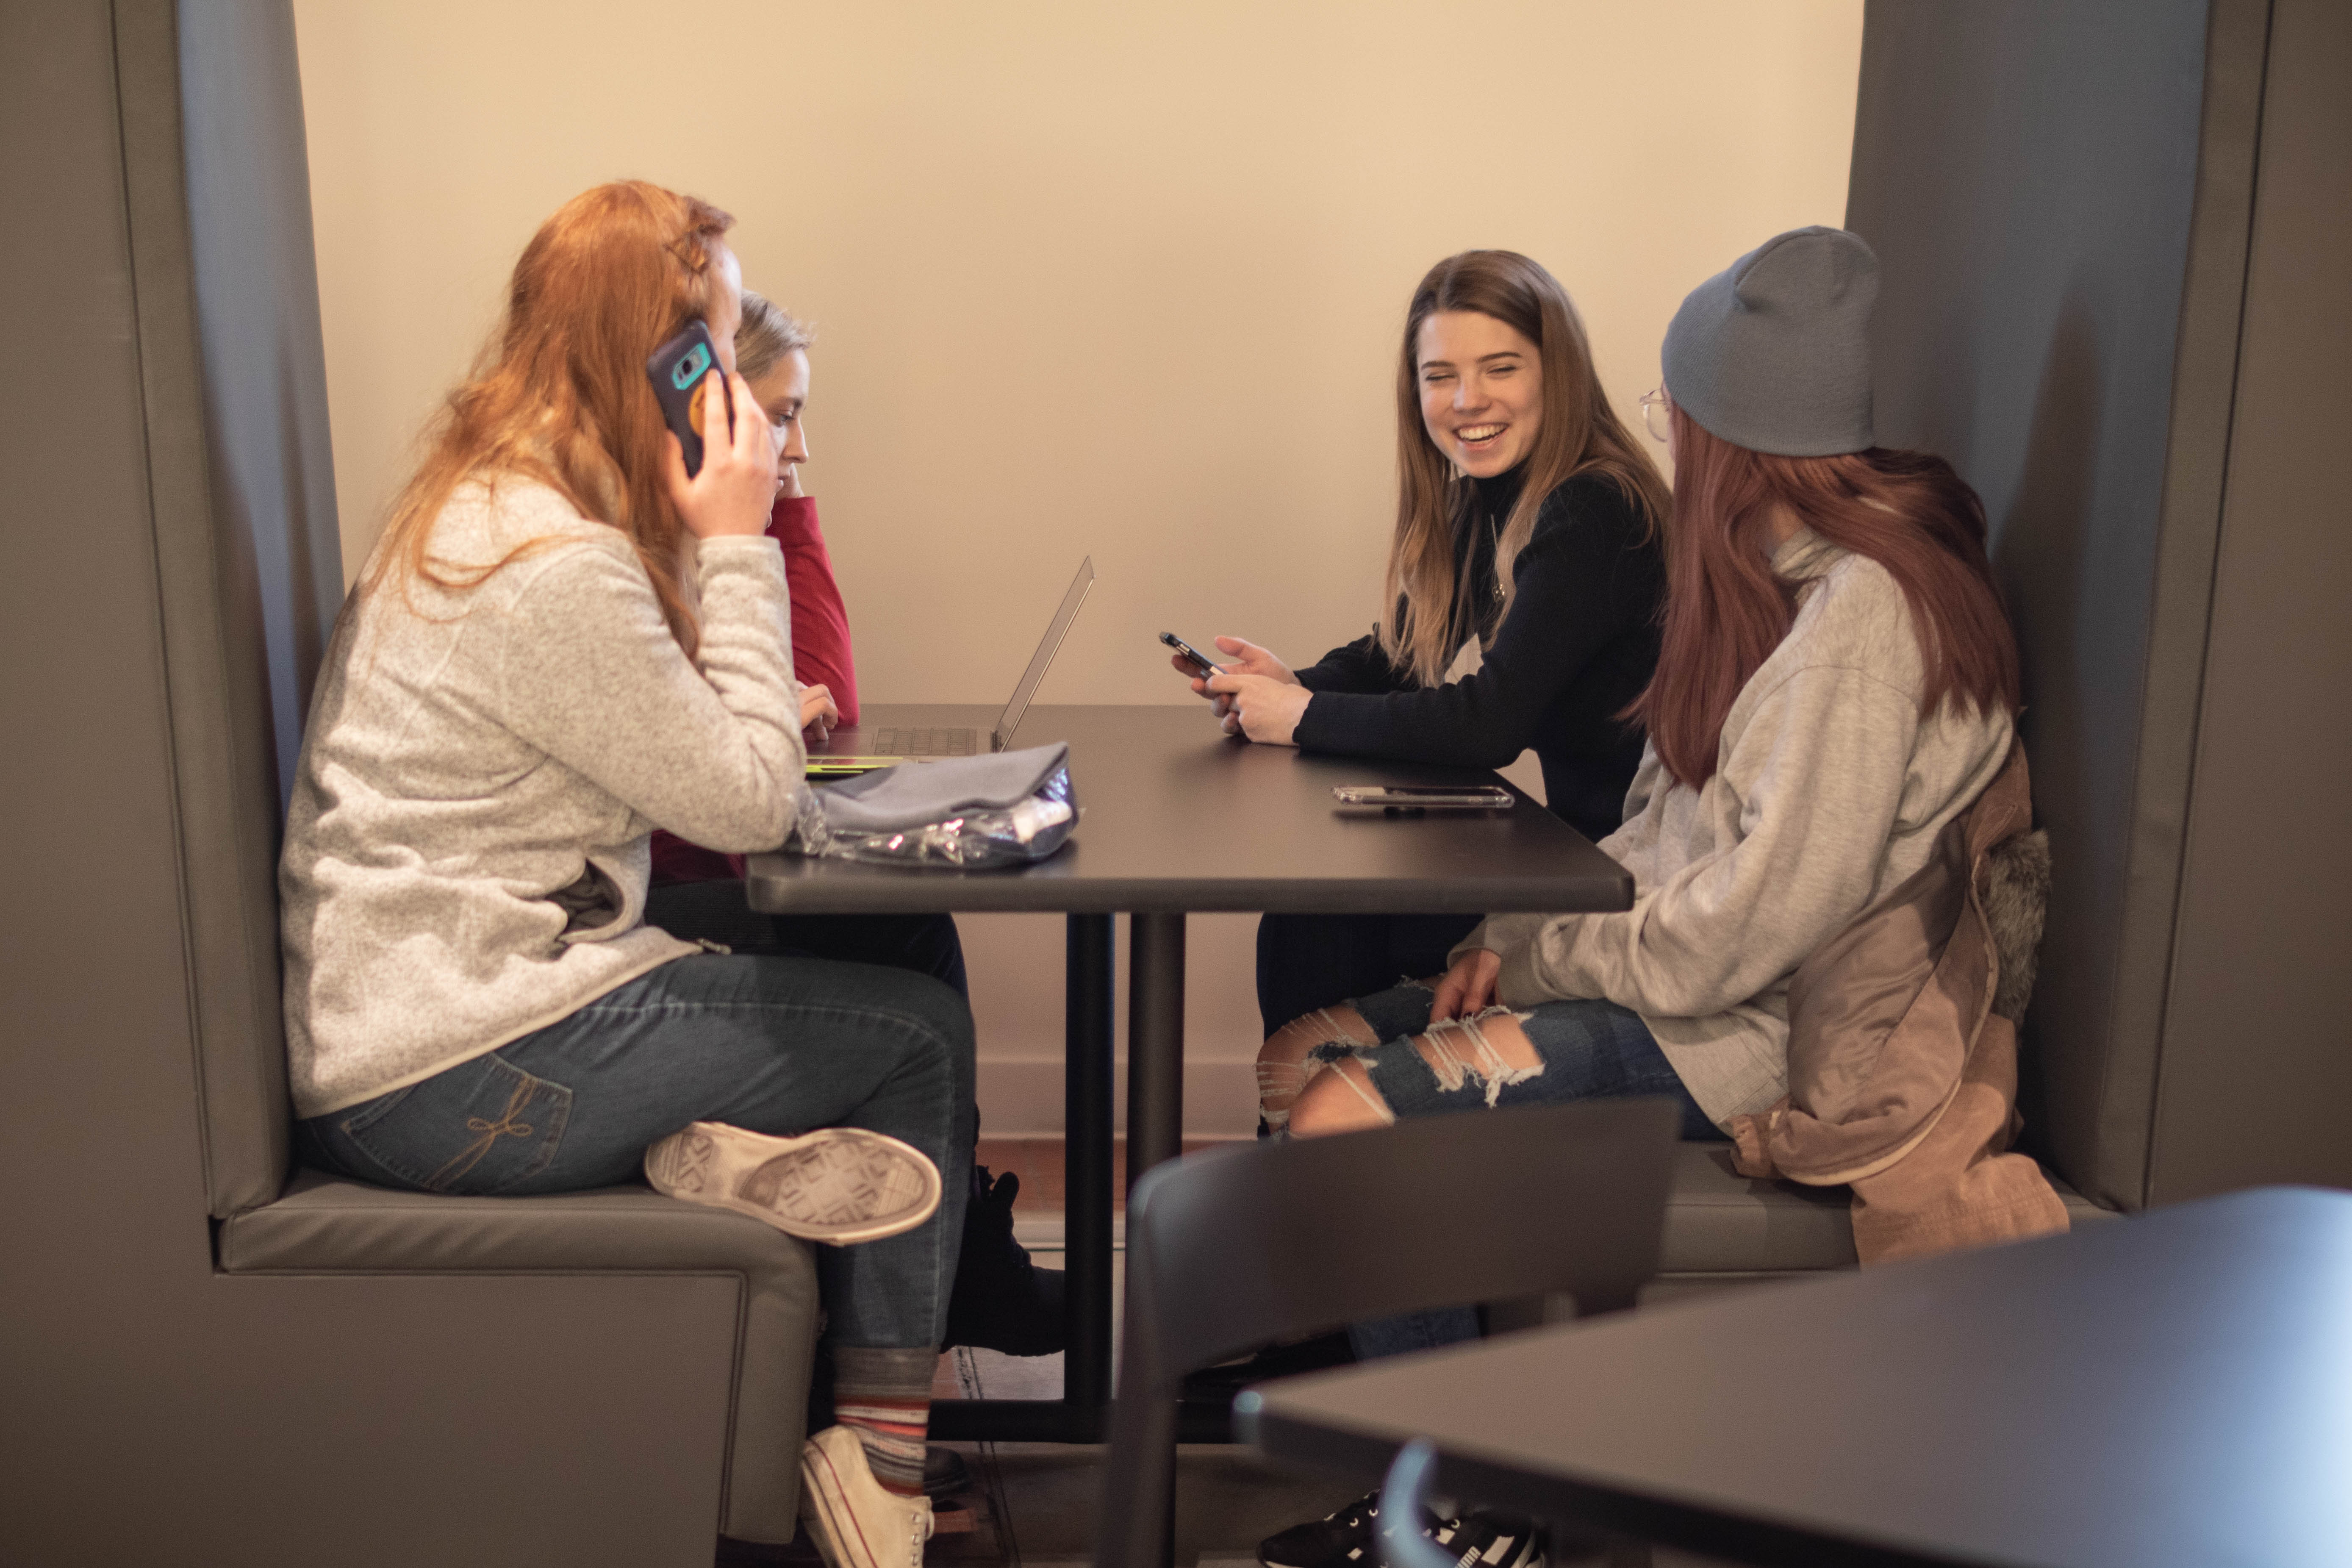 Beloit College is keeping social distancing top of mind as it plans for students to return to dining halls and dorms in the fall.